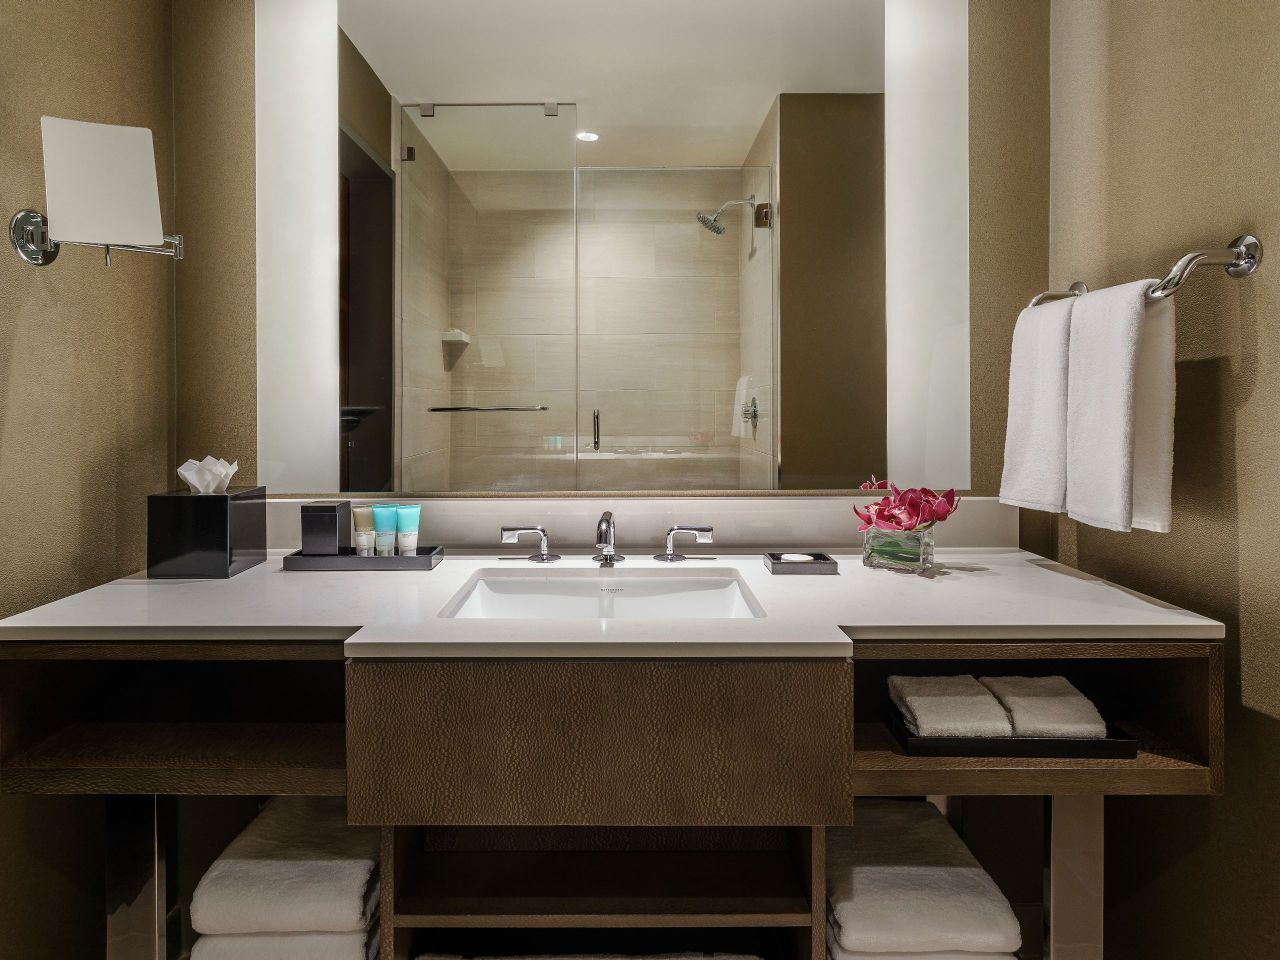 Standard Bathroom Vanity Hyatt Regency Tysons Corner Center